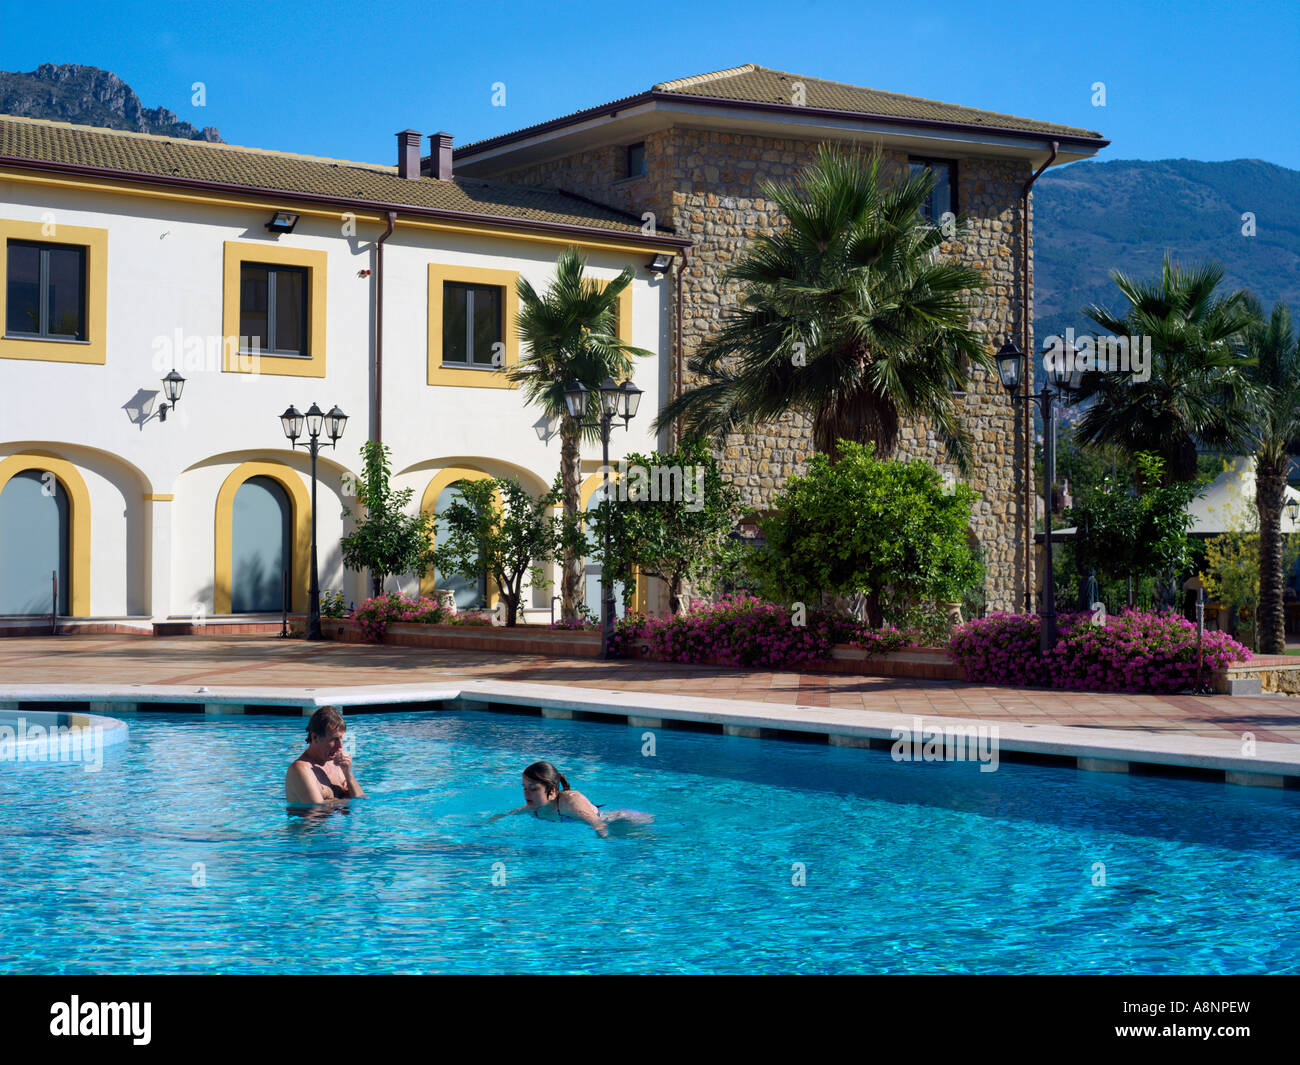 palermo sicily italy genoardo park hotel swimming pool people stock photo royalty free image